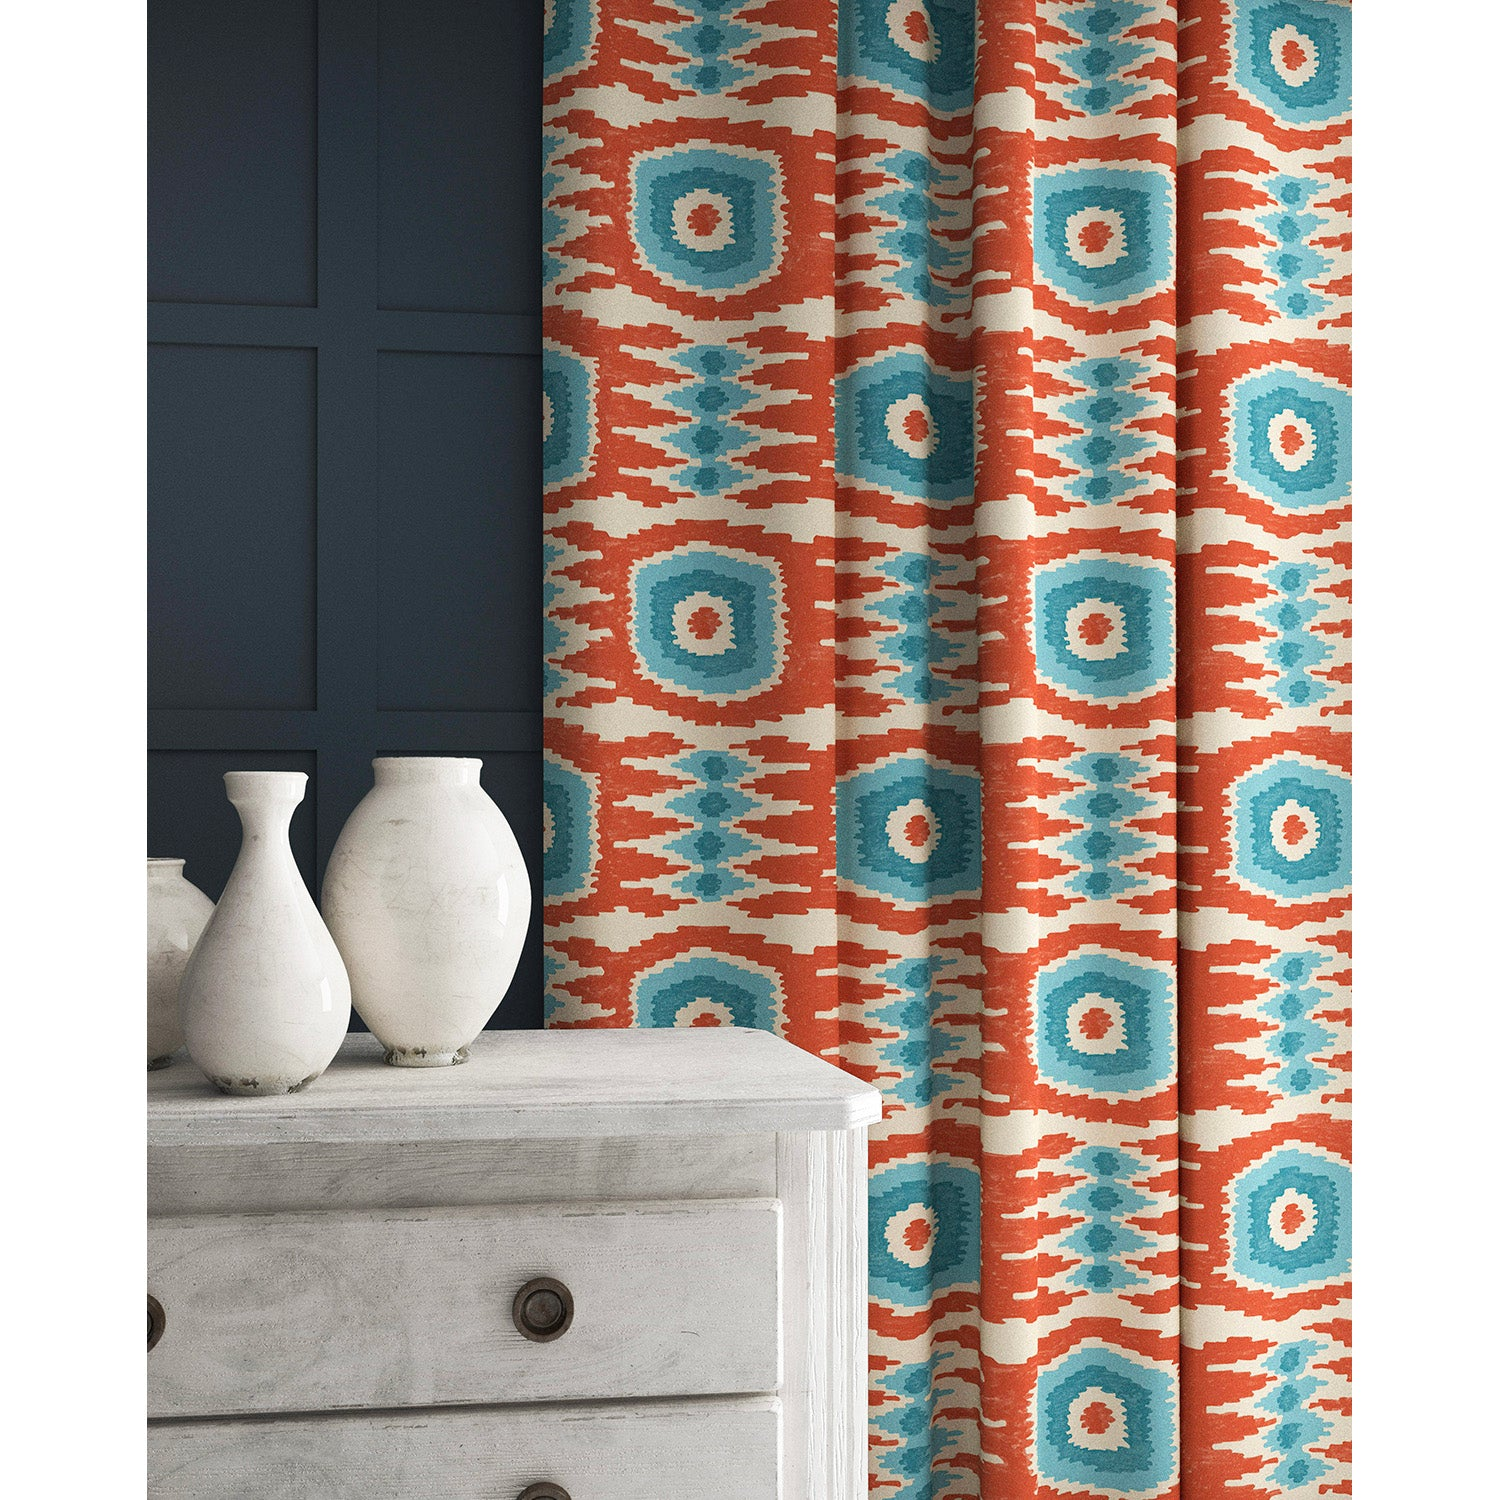 Velvet curtains in a orange and blue velvet fabric with stain resistant finish and abstract print